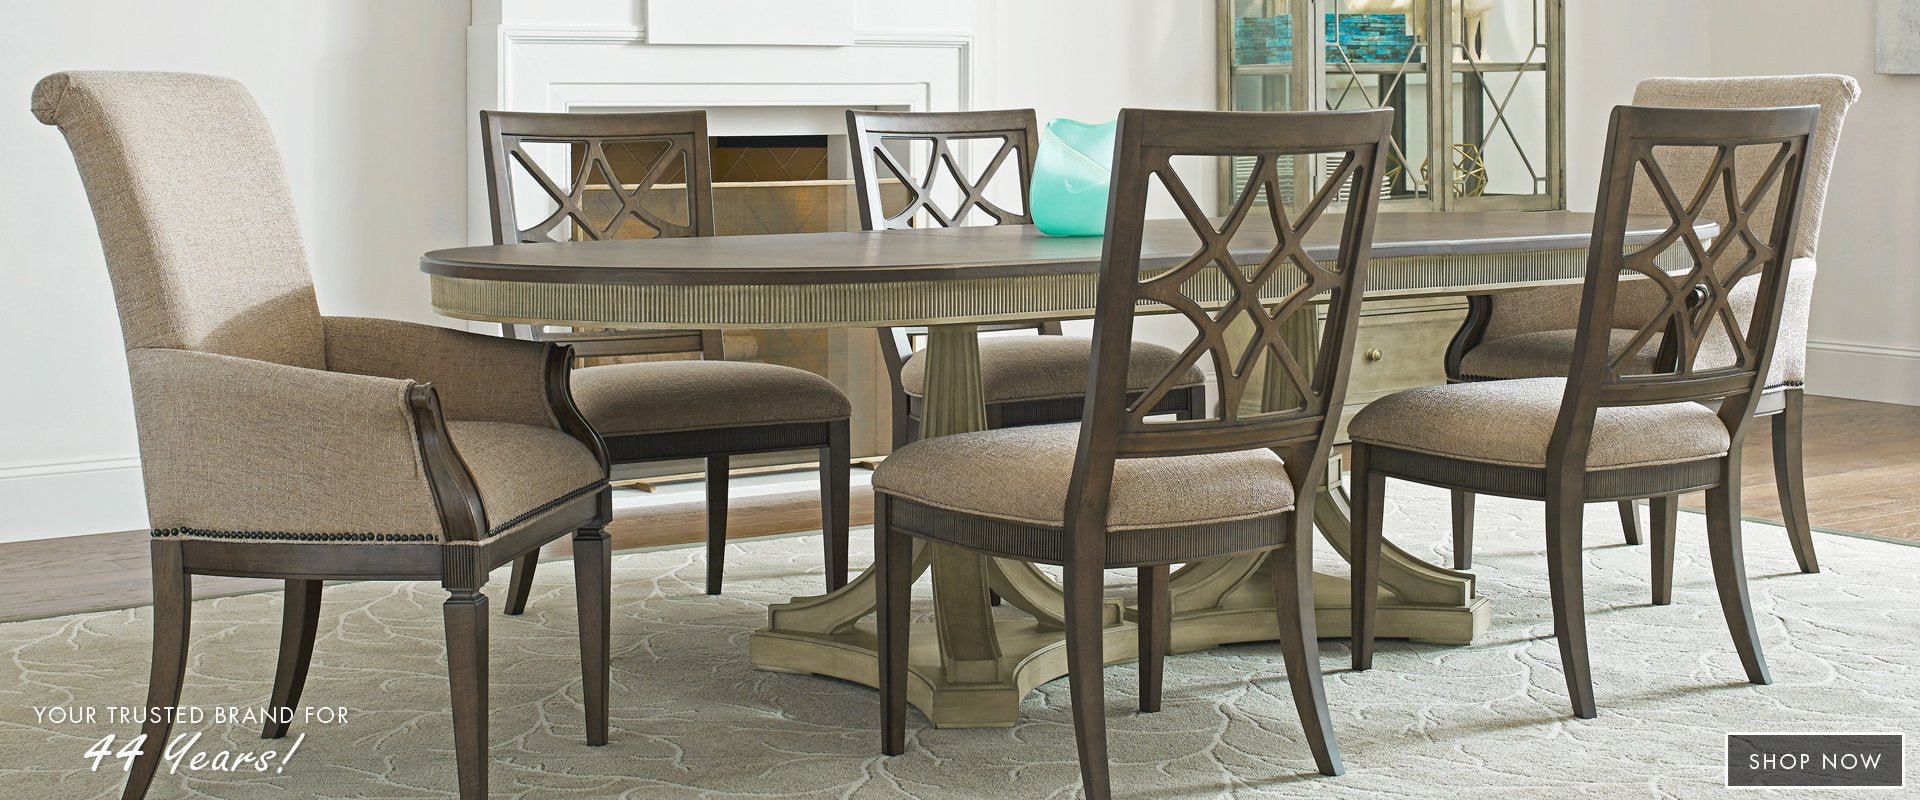 Jennifer Furniture Buy Home Furnishings In New York New Jersey Ct